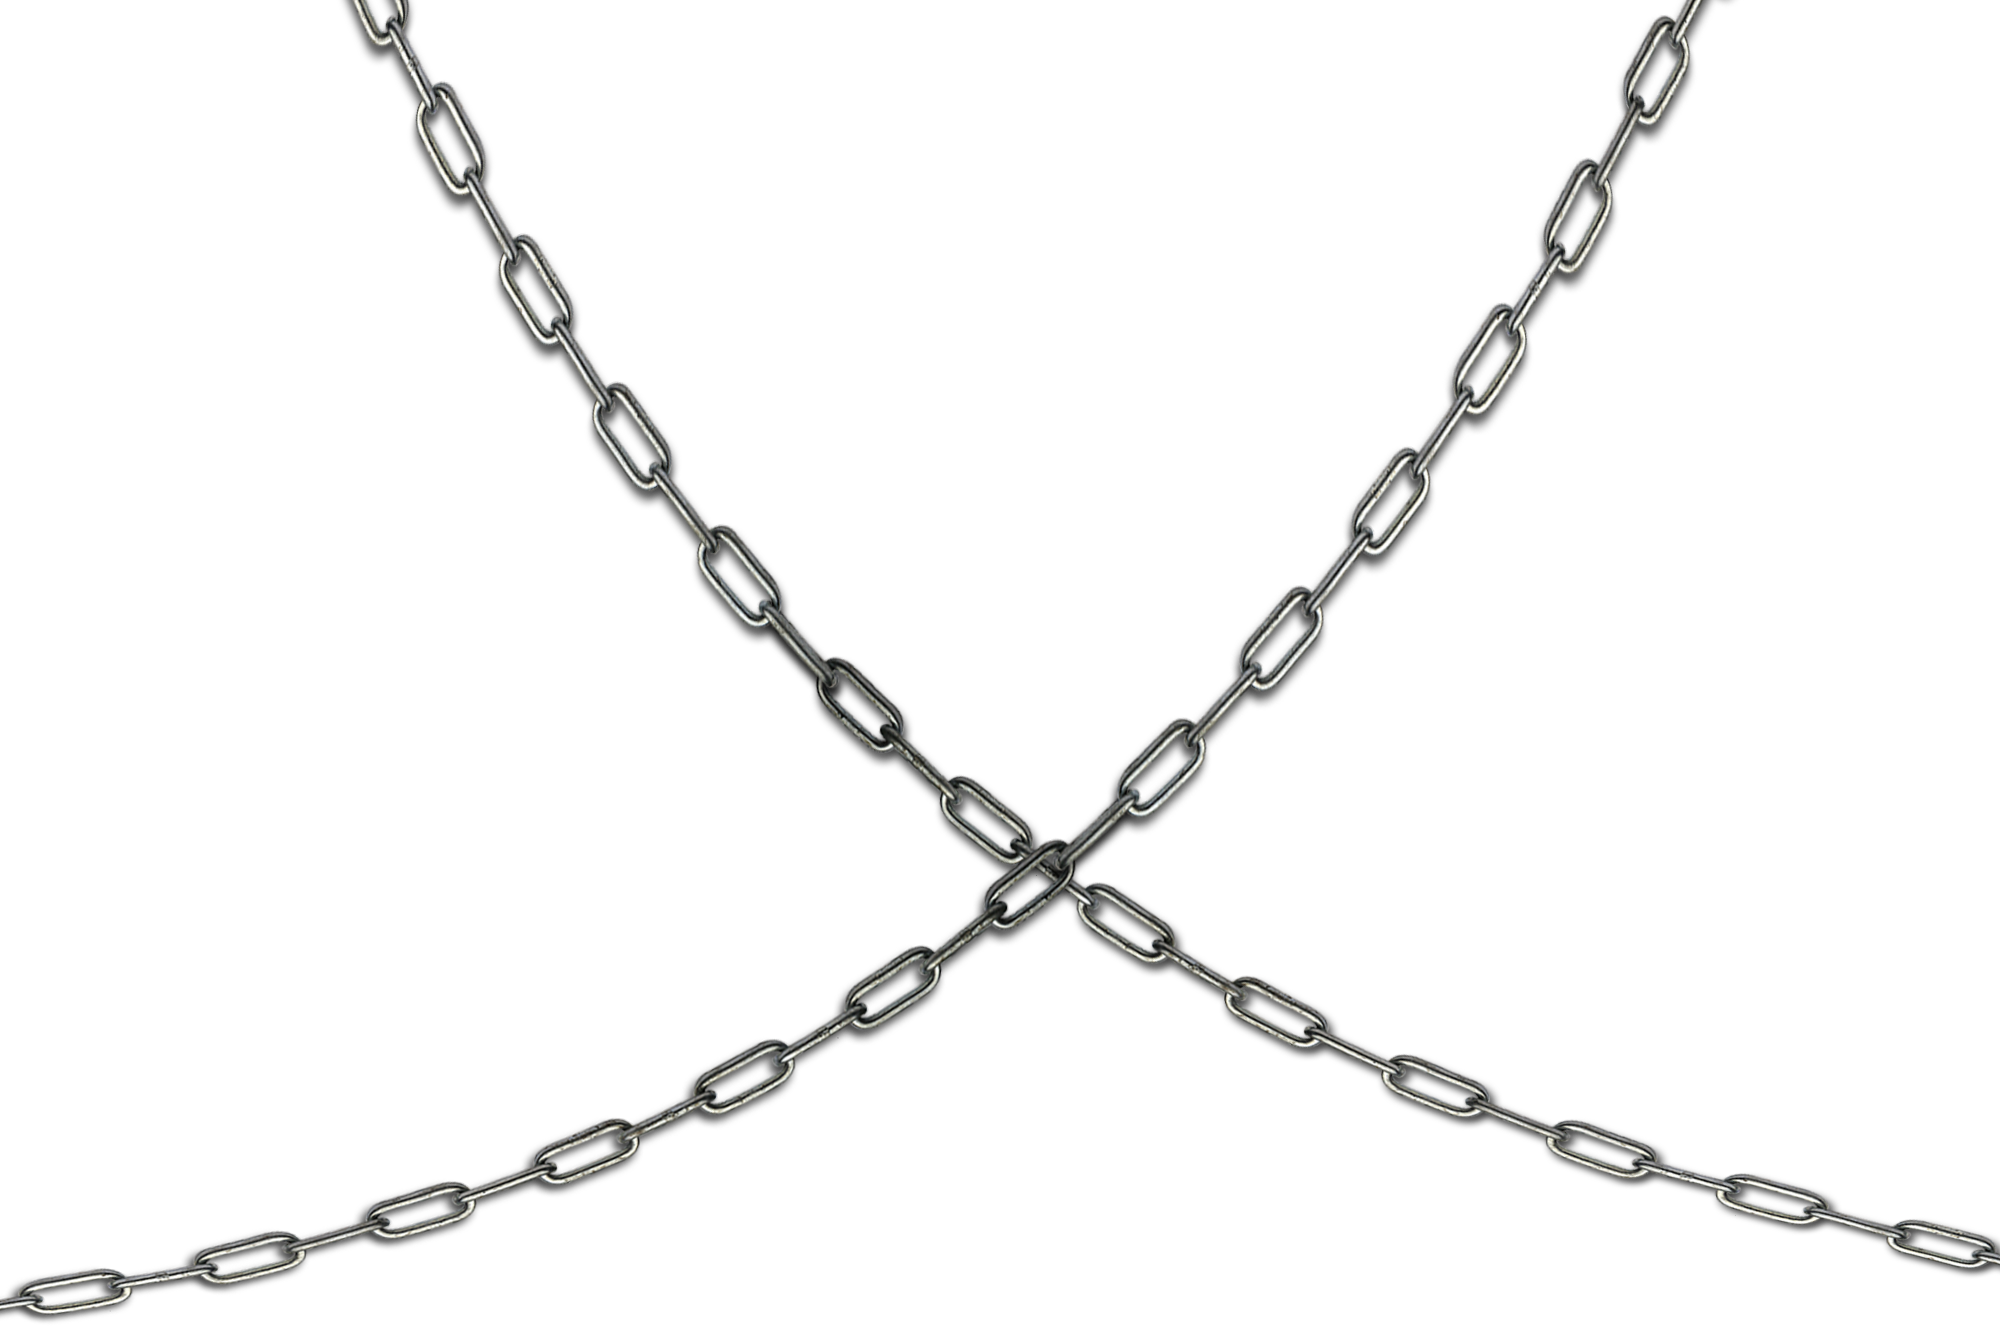 Dog chain clipart graphic royalty free download Chain PNG Images Transparent Free Download | PNGMart.com graphic royalty free download